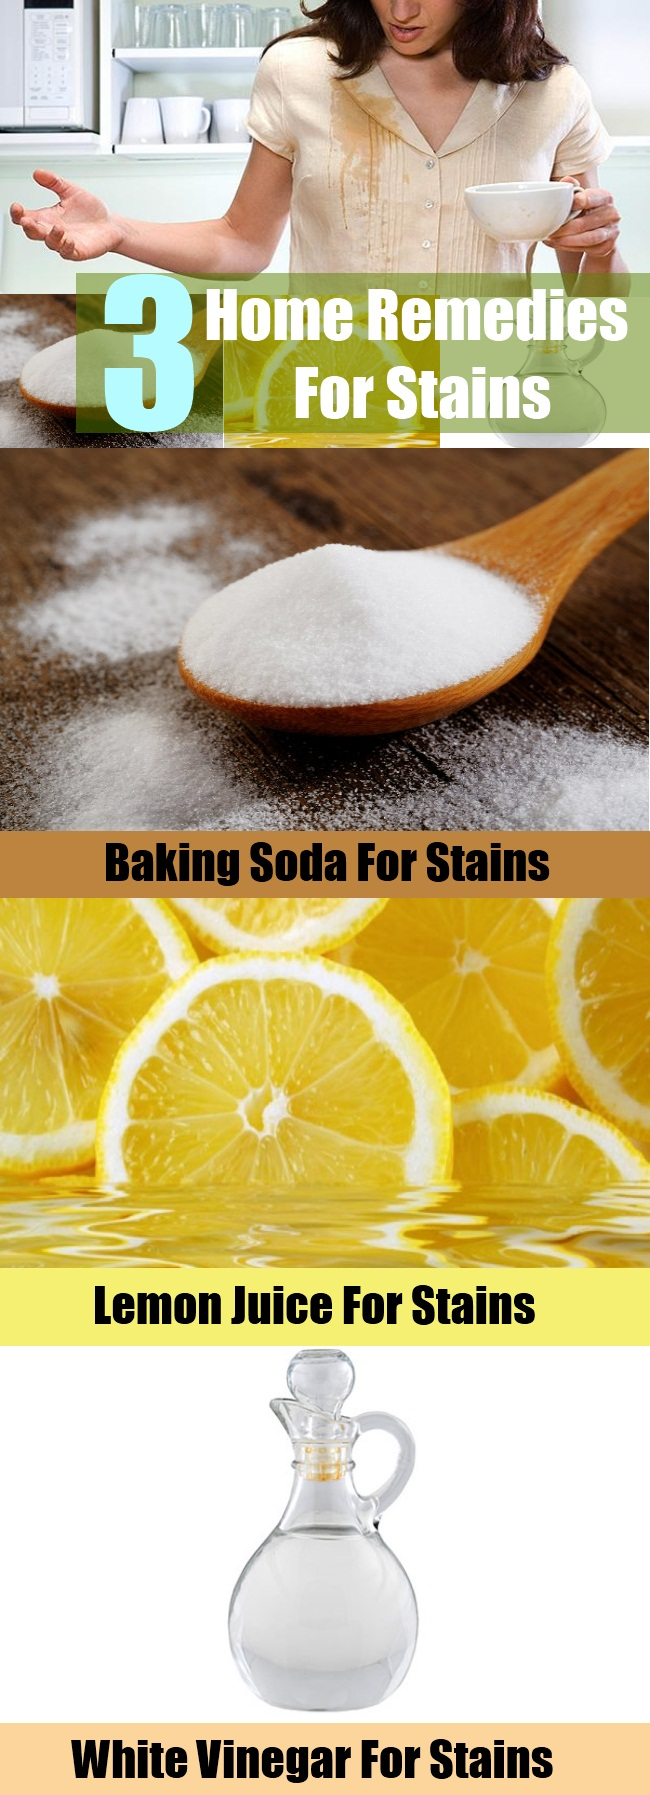 How To Get Rid Of Stains In White Clothes Home Remedies